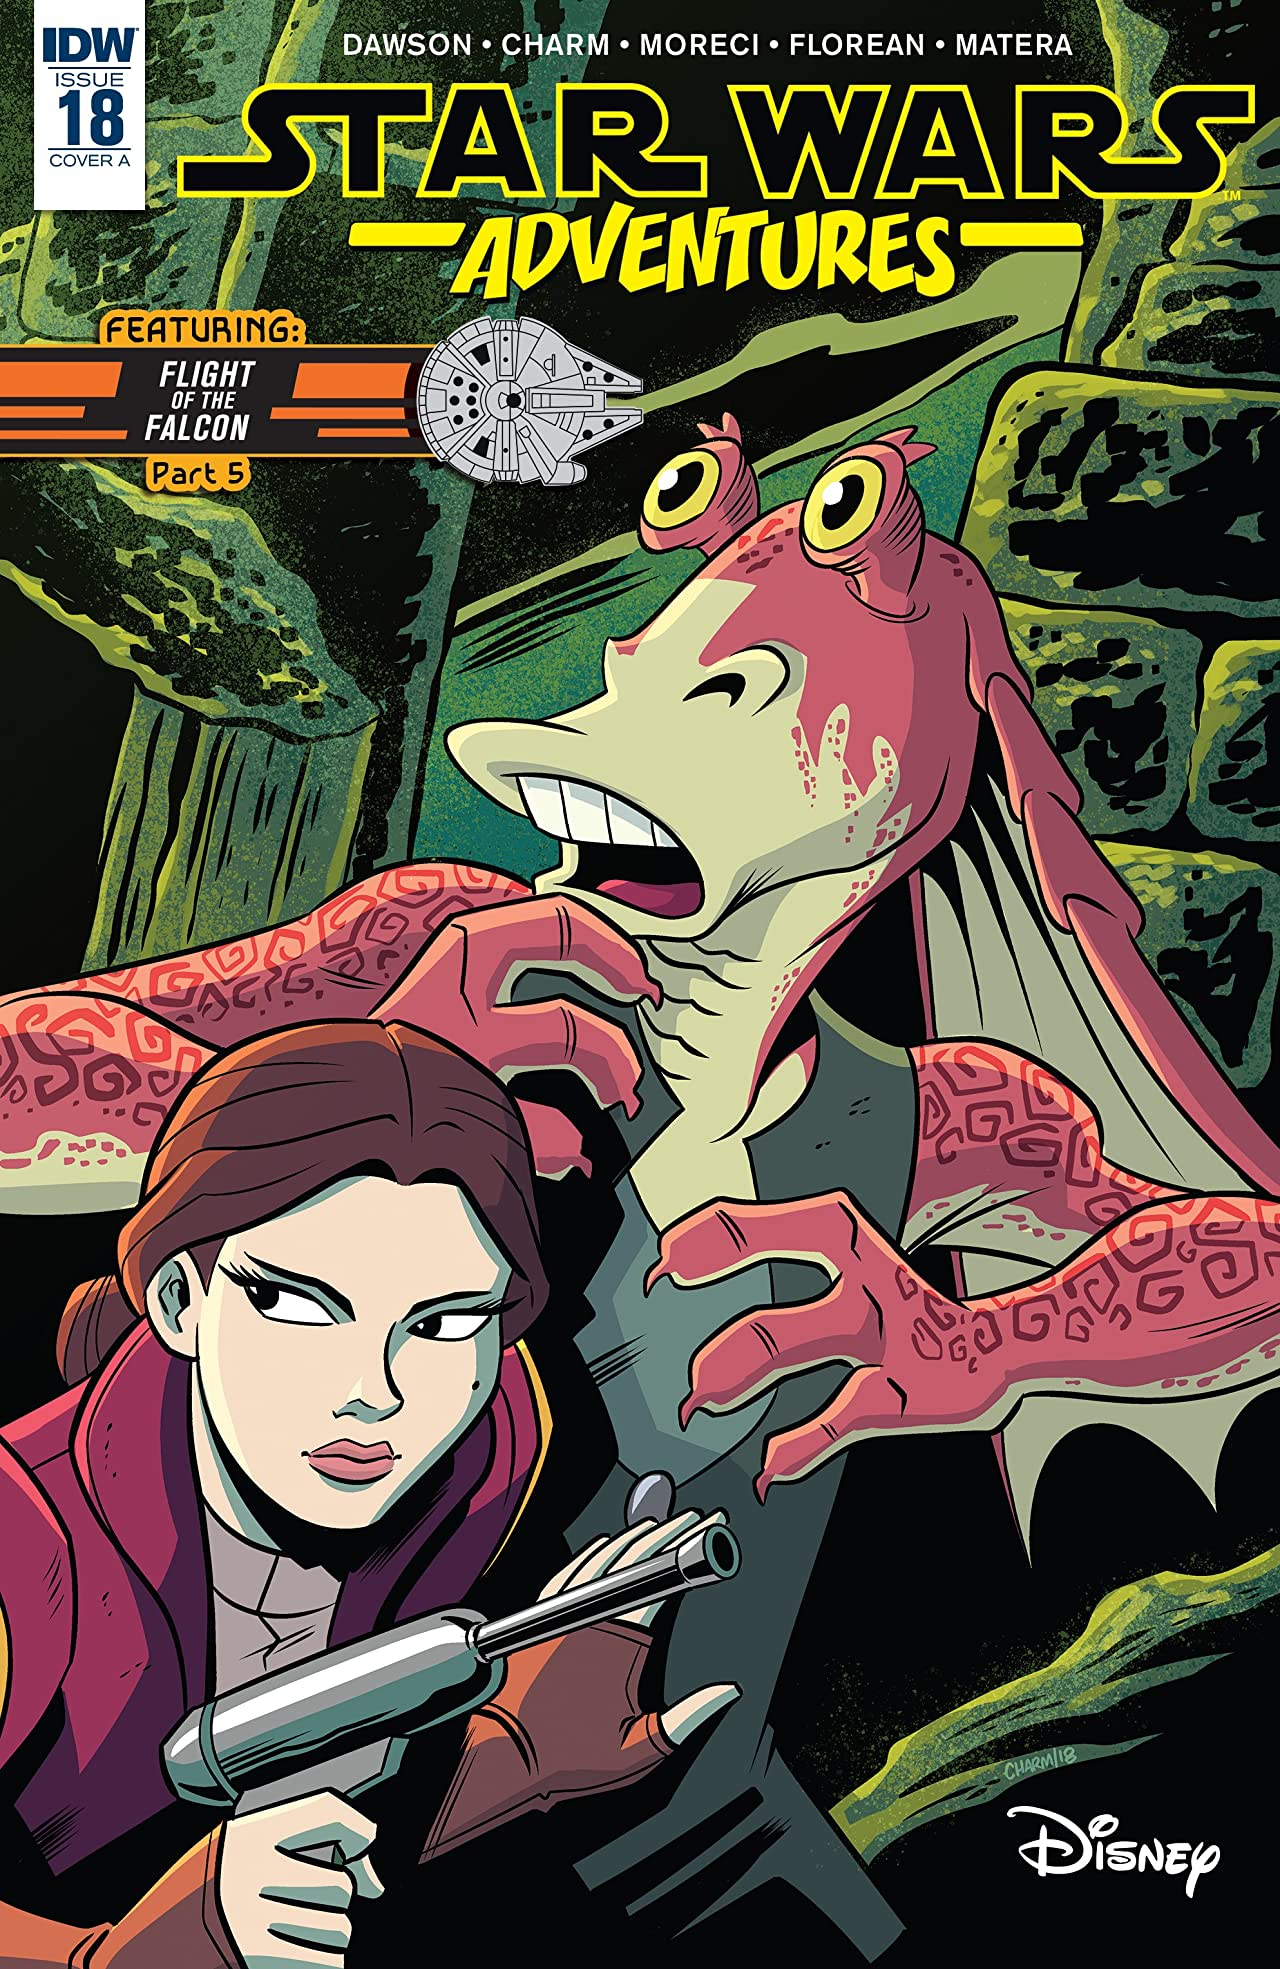 Star Wars Adventures #18